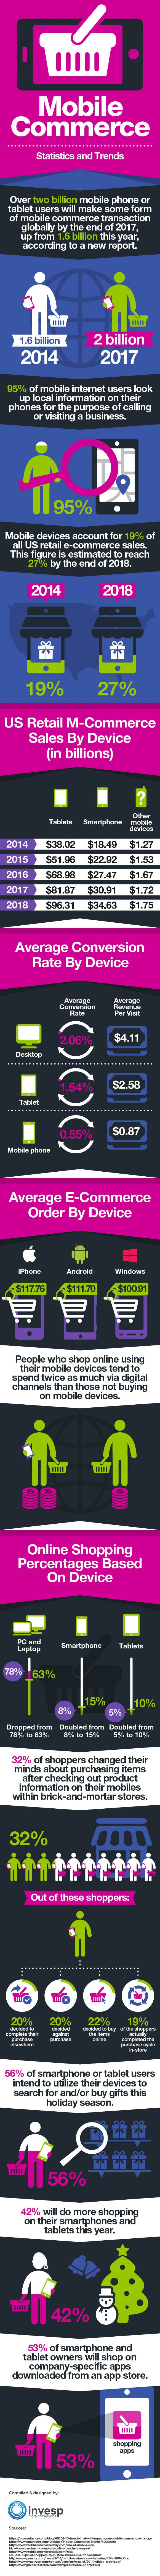 Mobile Commerce Statistics and Trends [Infographic]